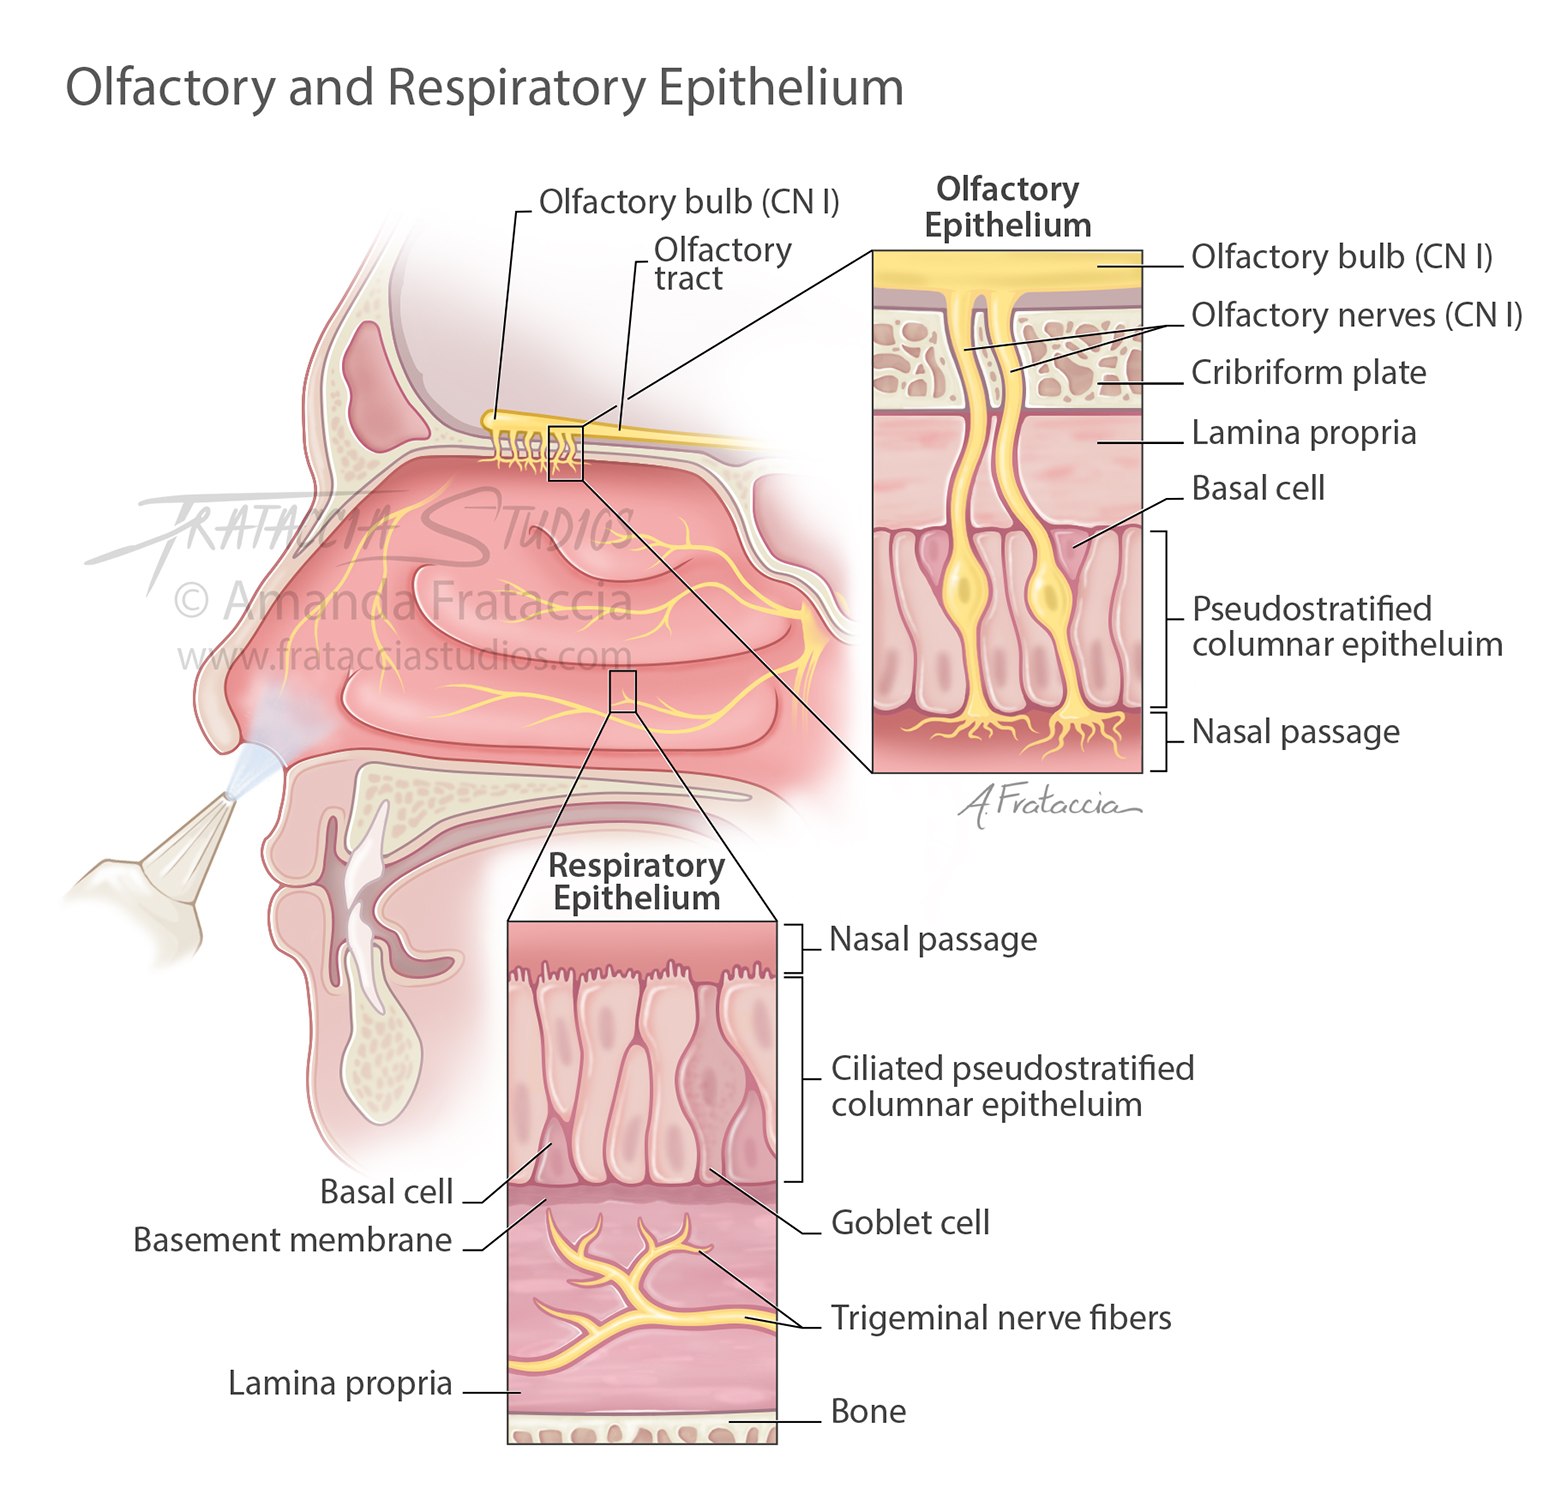 Olfactory and Respiratory Epithelium